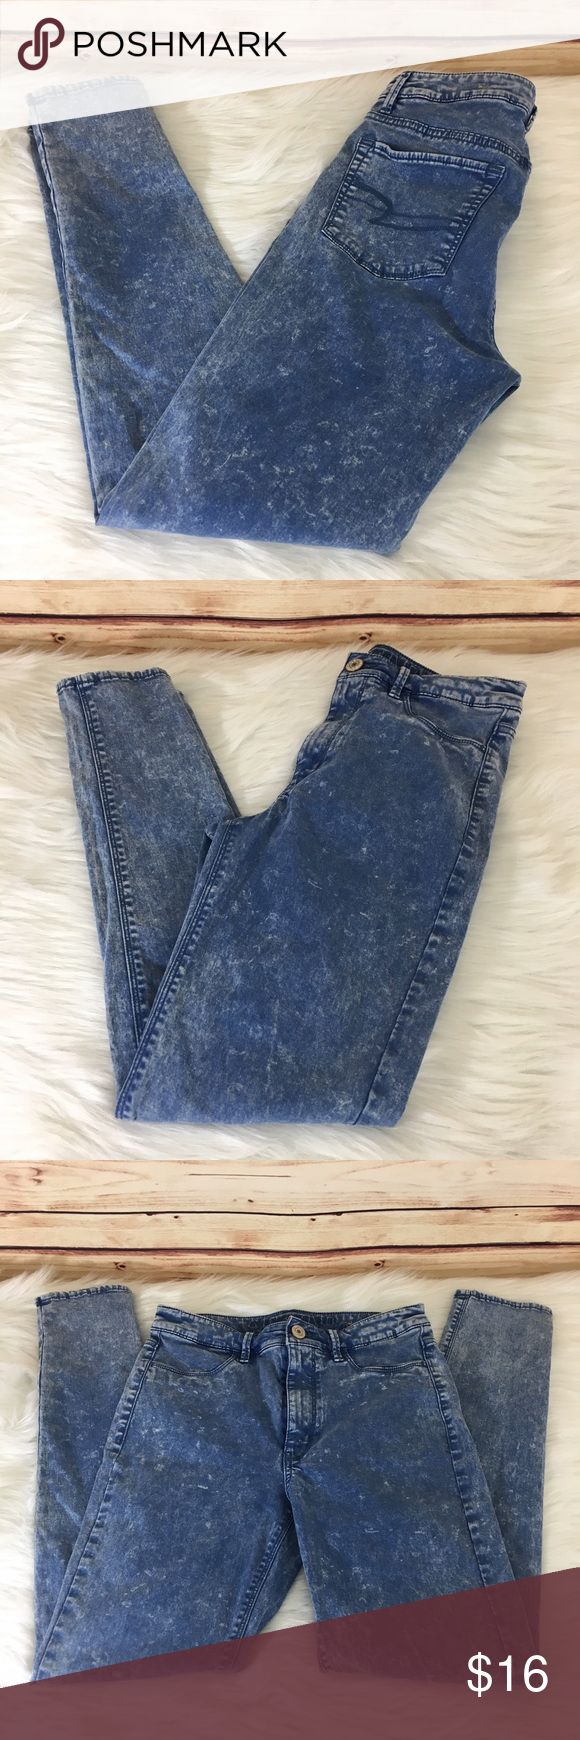 "✨ American Eagle Outfitters high waisted jeggings ✨Newly listed items are priced to move.. please help me clear out my actual closet 😉 Brand: American Eagle Outfitters Size: 6 regular Type: 'sky high' wash, high waisted skinny jegging style,  Details: front pockets don't function, back pockets do  Waist measurement: 13.5"" across  Inseam: 28"" Length: 37.5"" Condition: preloved, excellent  Other: this item does not fit me, sorry I cannot model ✨Build a bundle with all your likes and use the…"